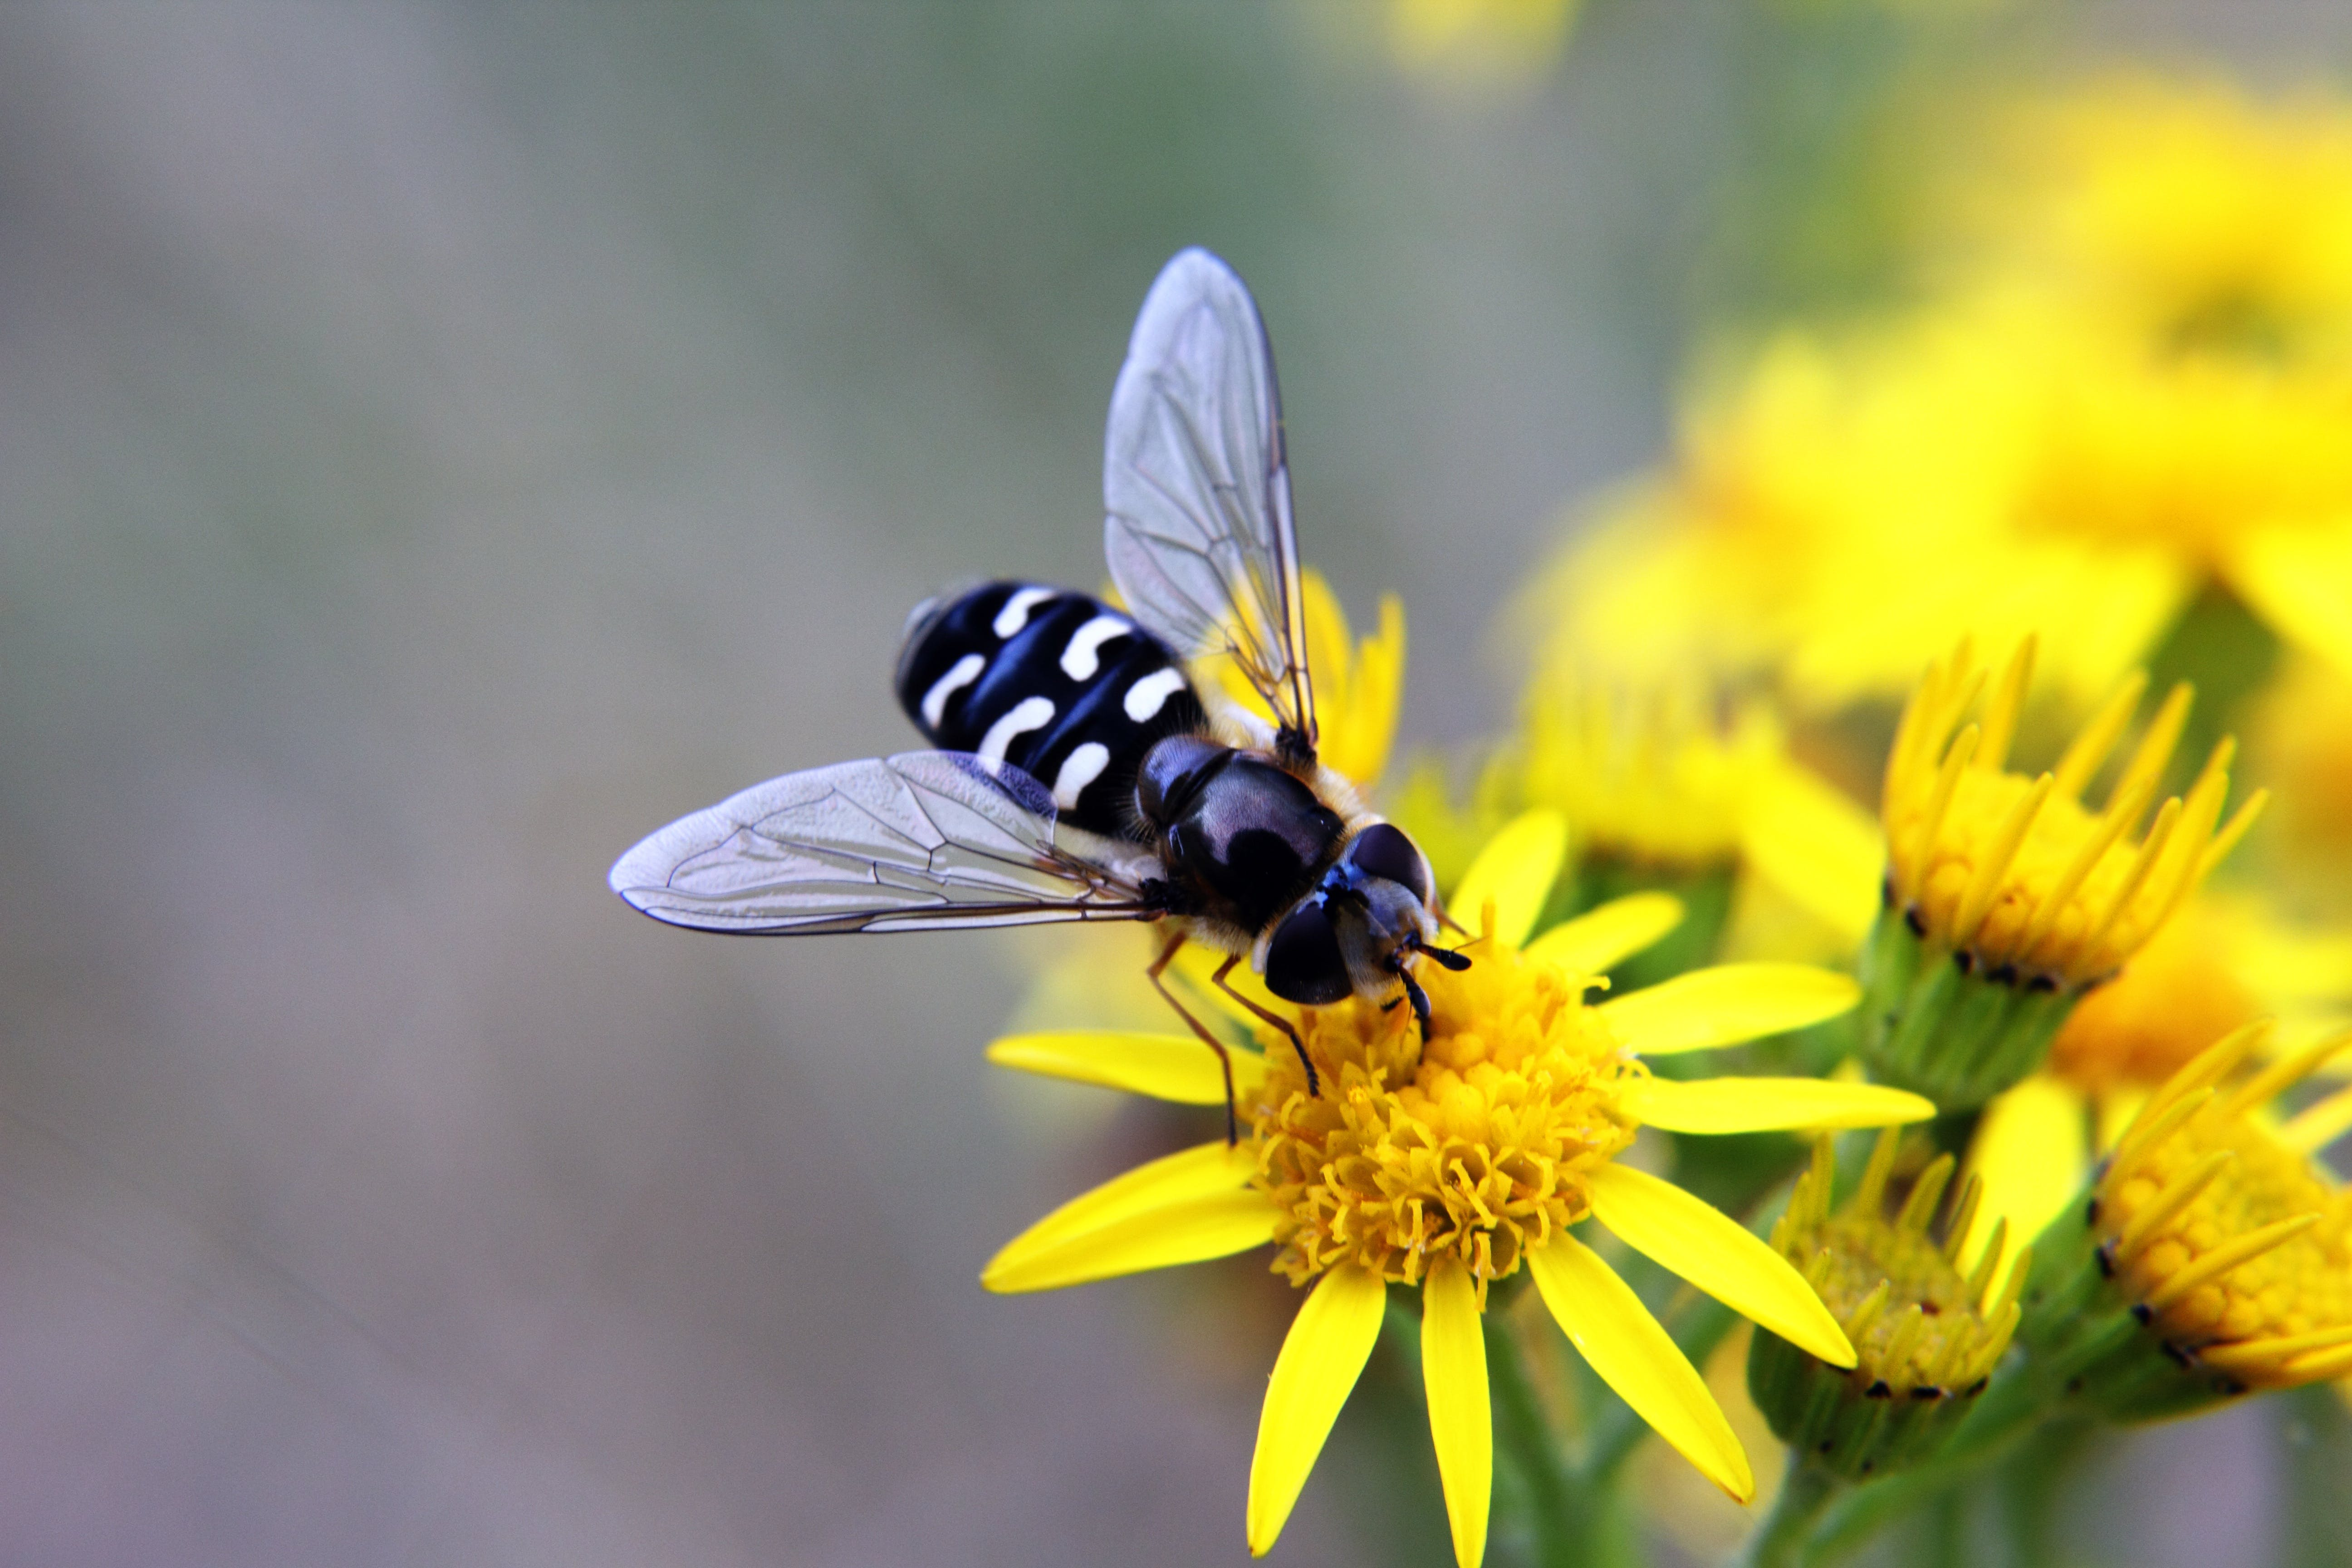 Black Fly on Yellow Flowers